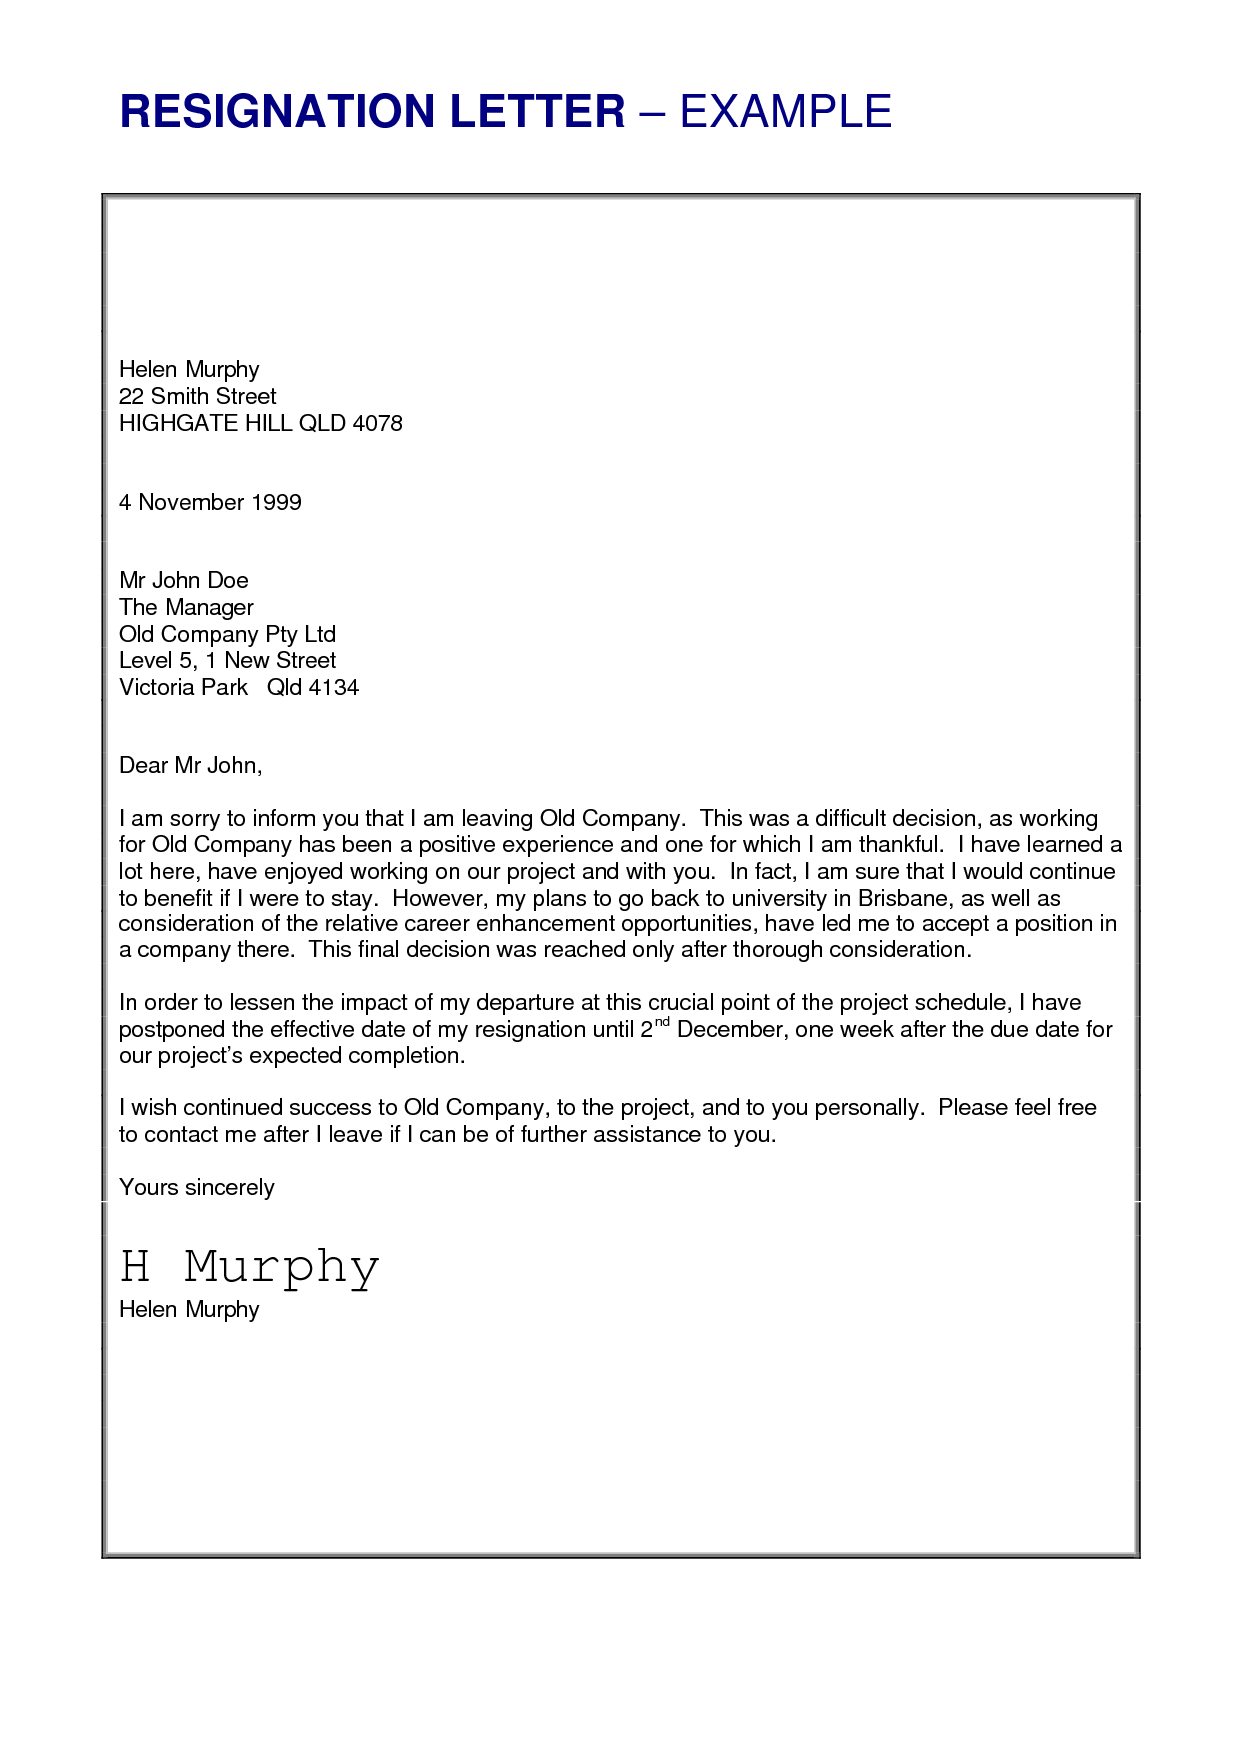 Job Resignation Letter Sample Loganun Blog – Sample Letter of Resignation Template